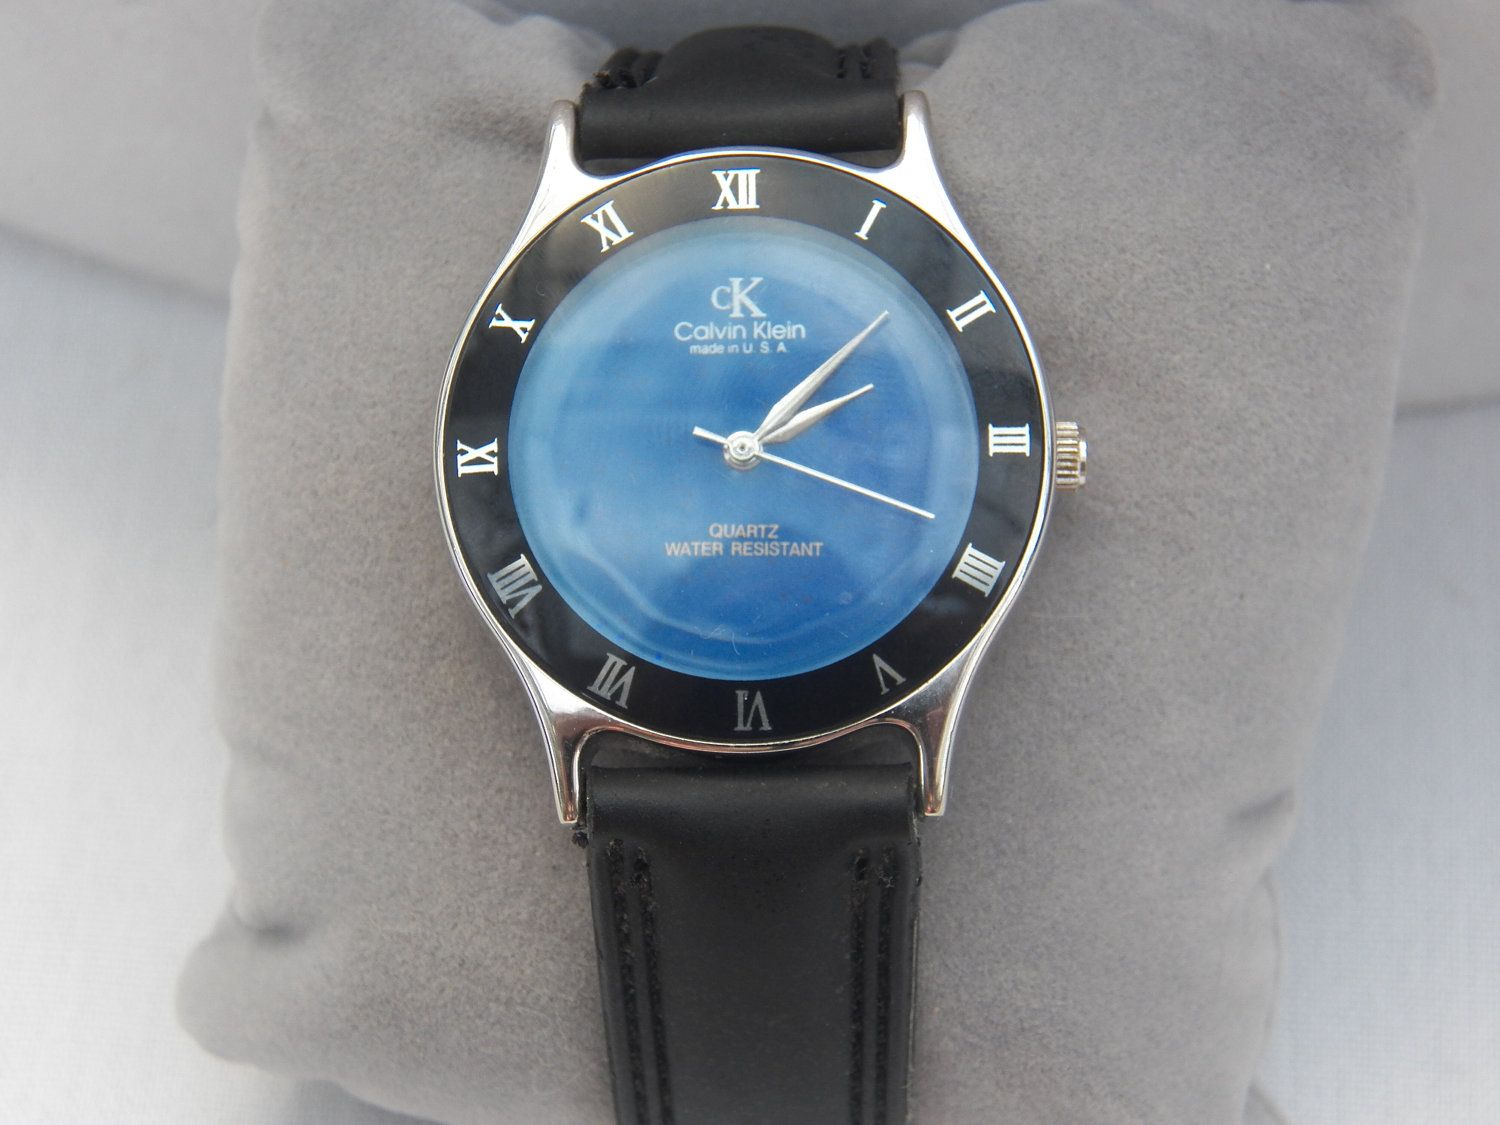 super retro authentic calvin klein mood watch retro mans super retro authentic calvin klein mood watch retro mans accessory 70 s 80 s mens jewelry accessory leather band usa made